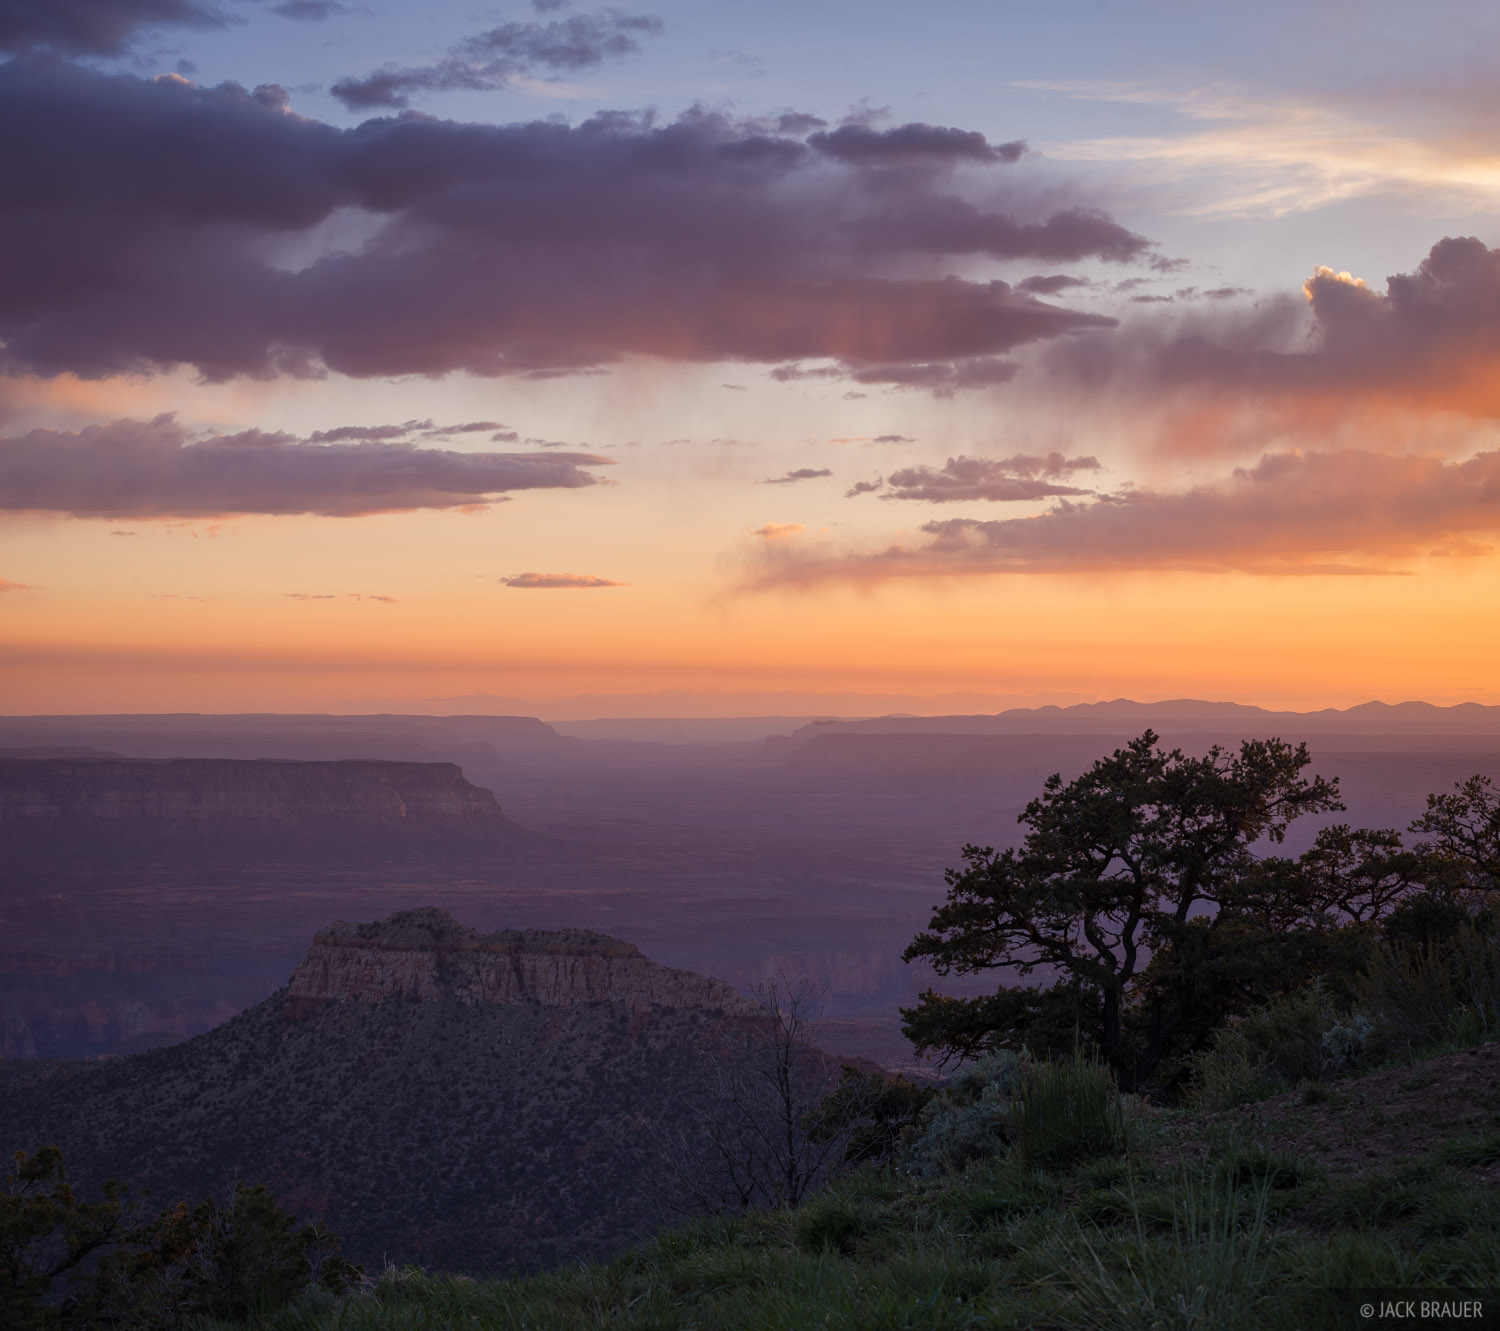 Arizona,Grand Canyon, sunset, Crazy Jug Point, photo